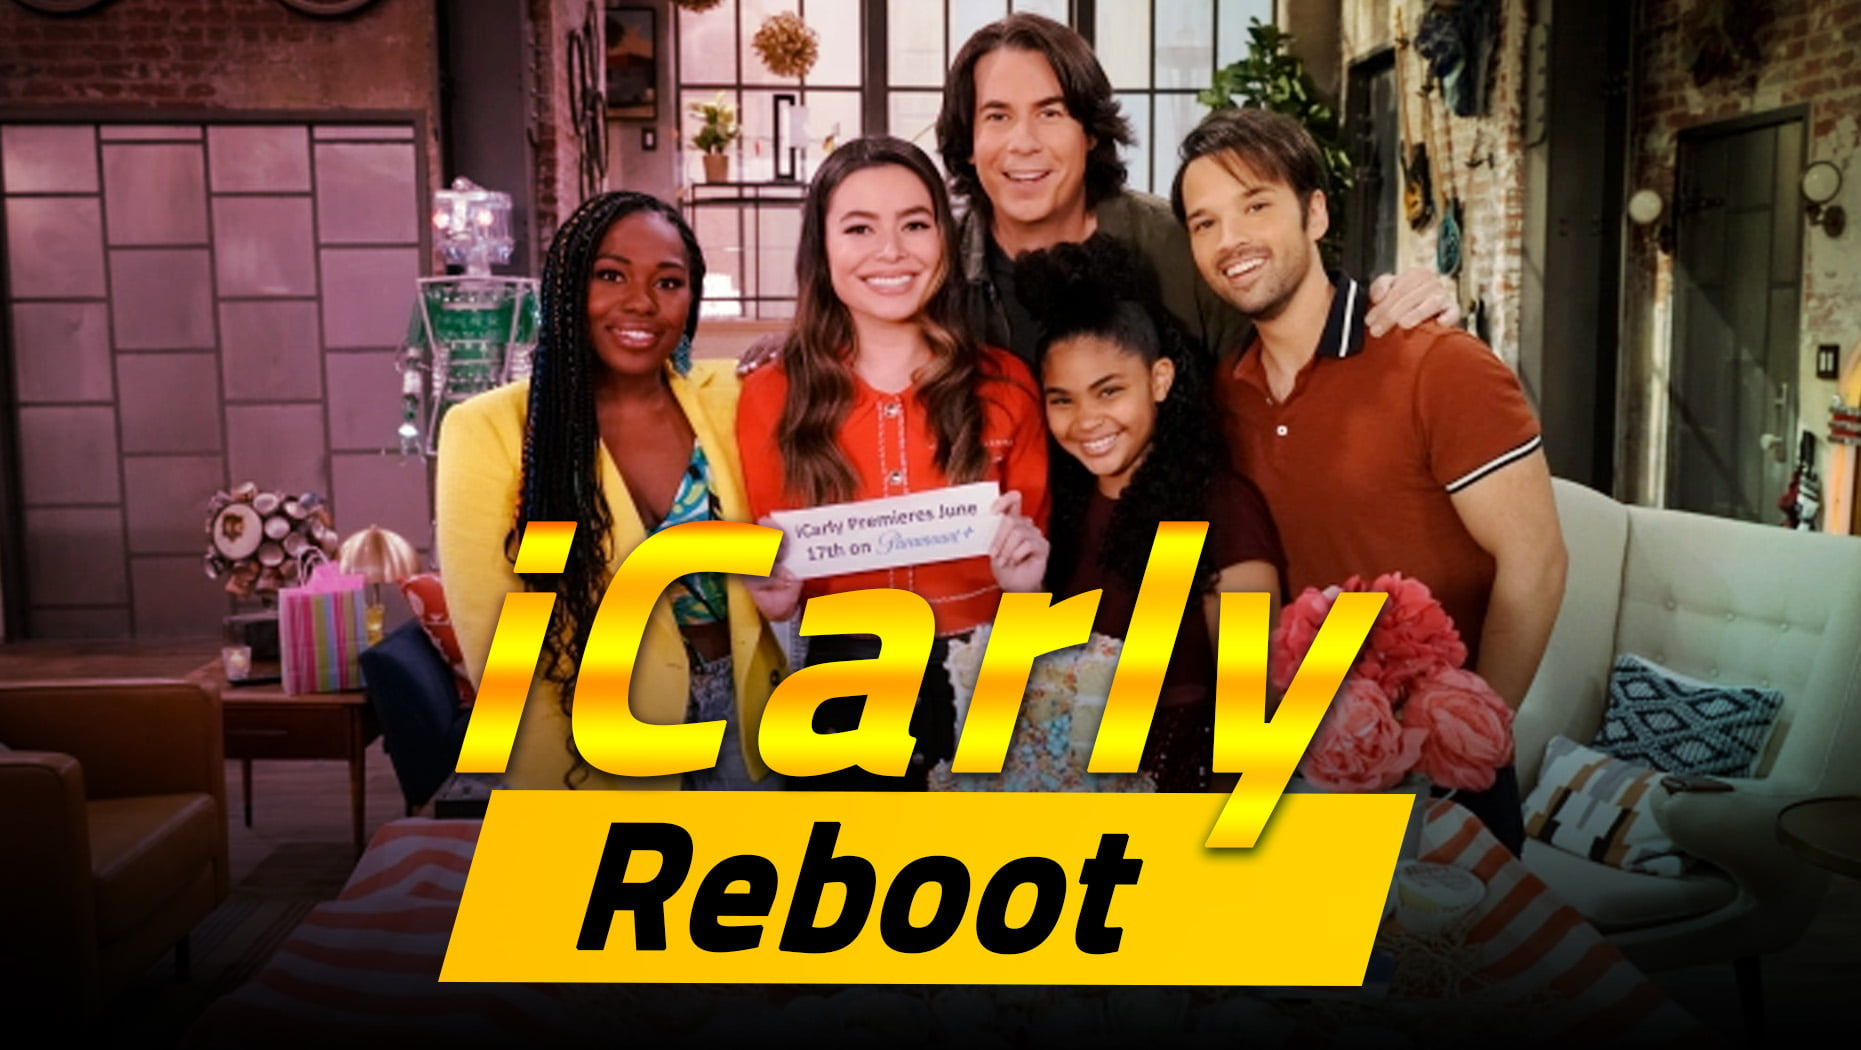 iCarly Reboot Episode 5: Release Date, Time, Promo and Watch Online